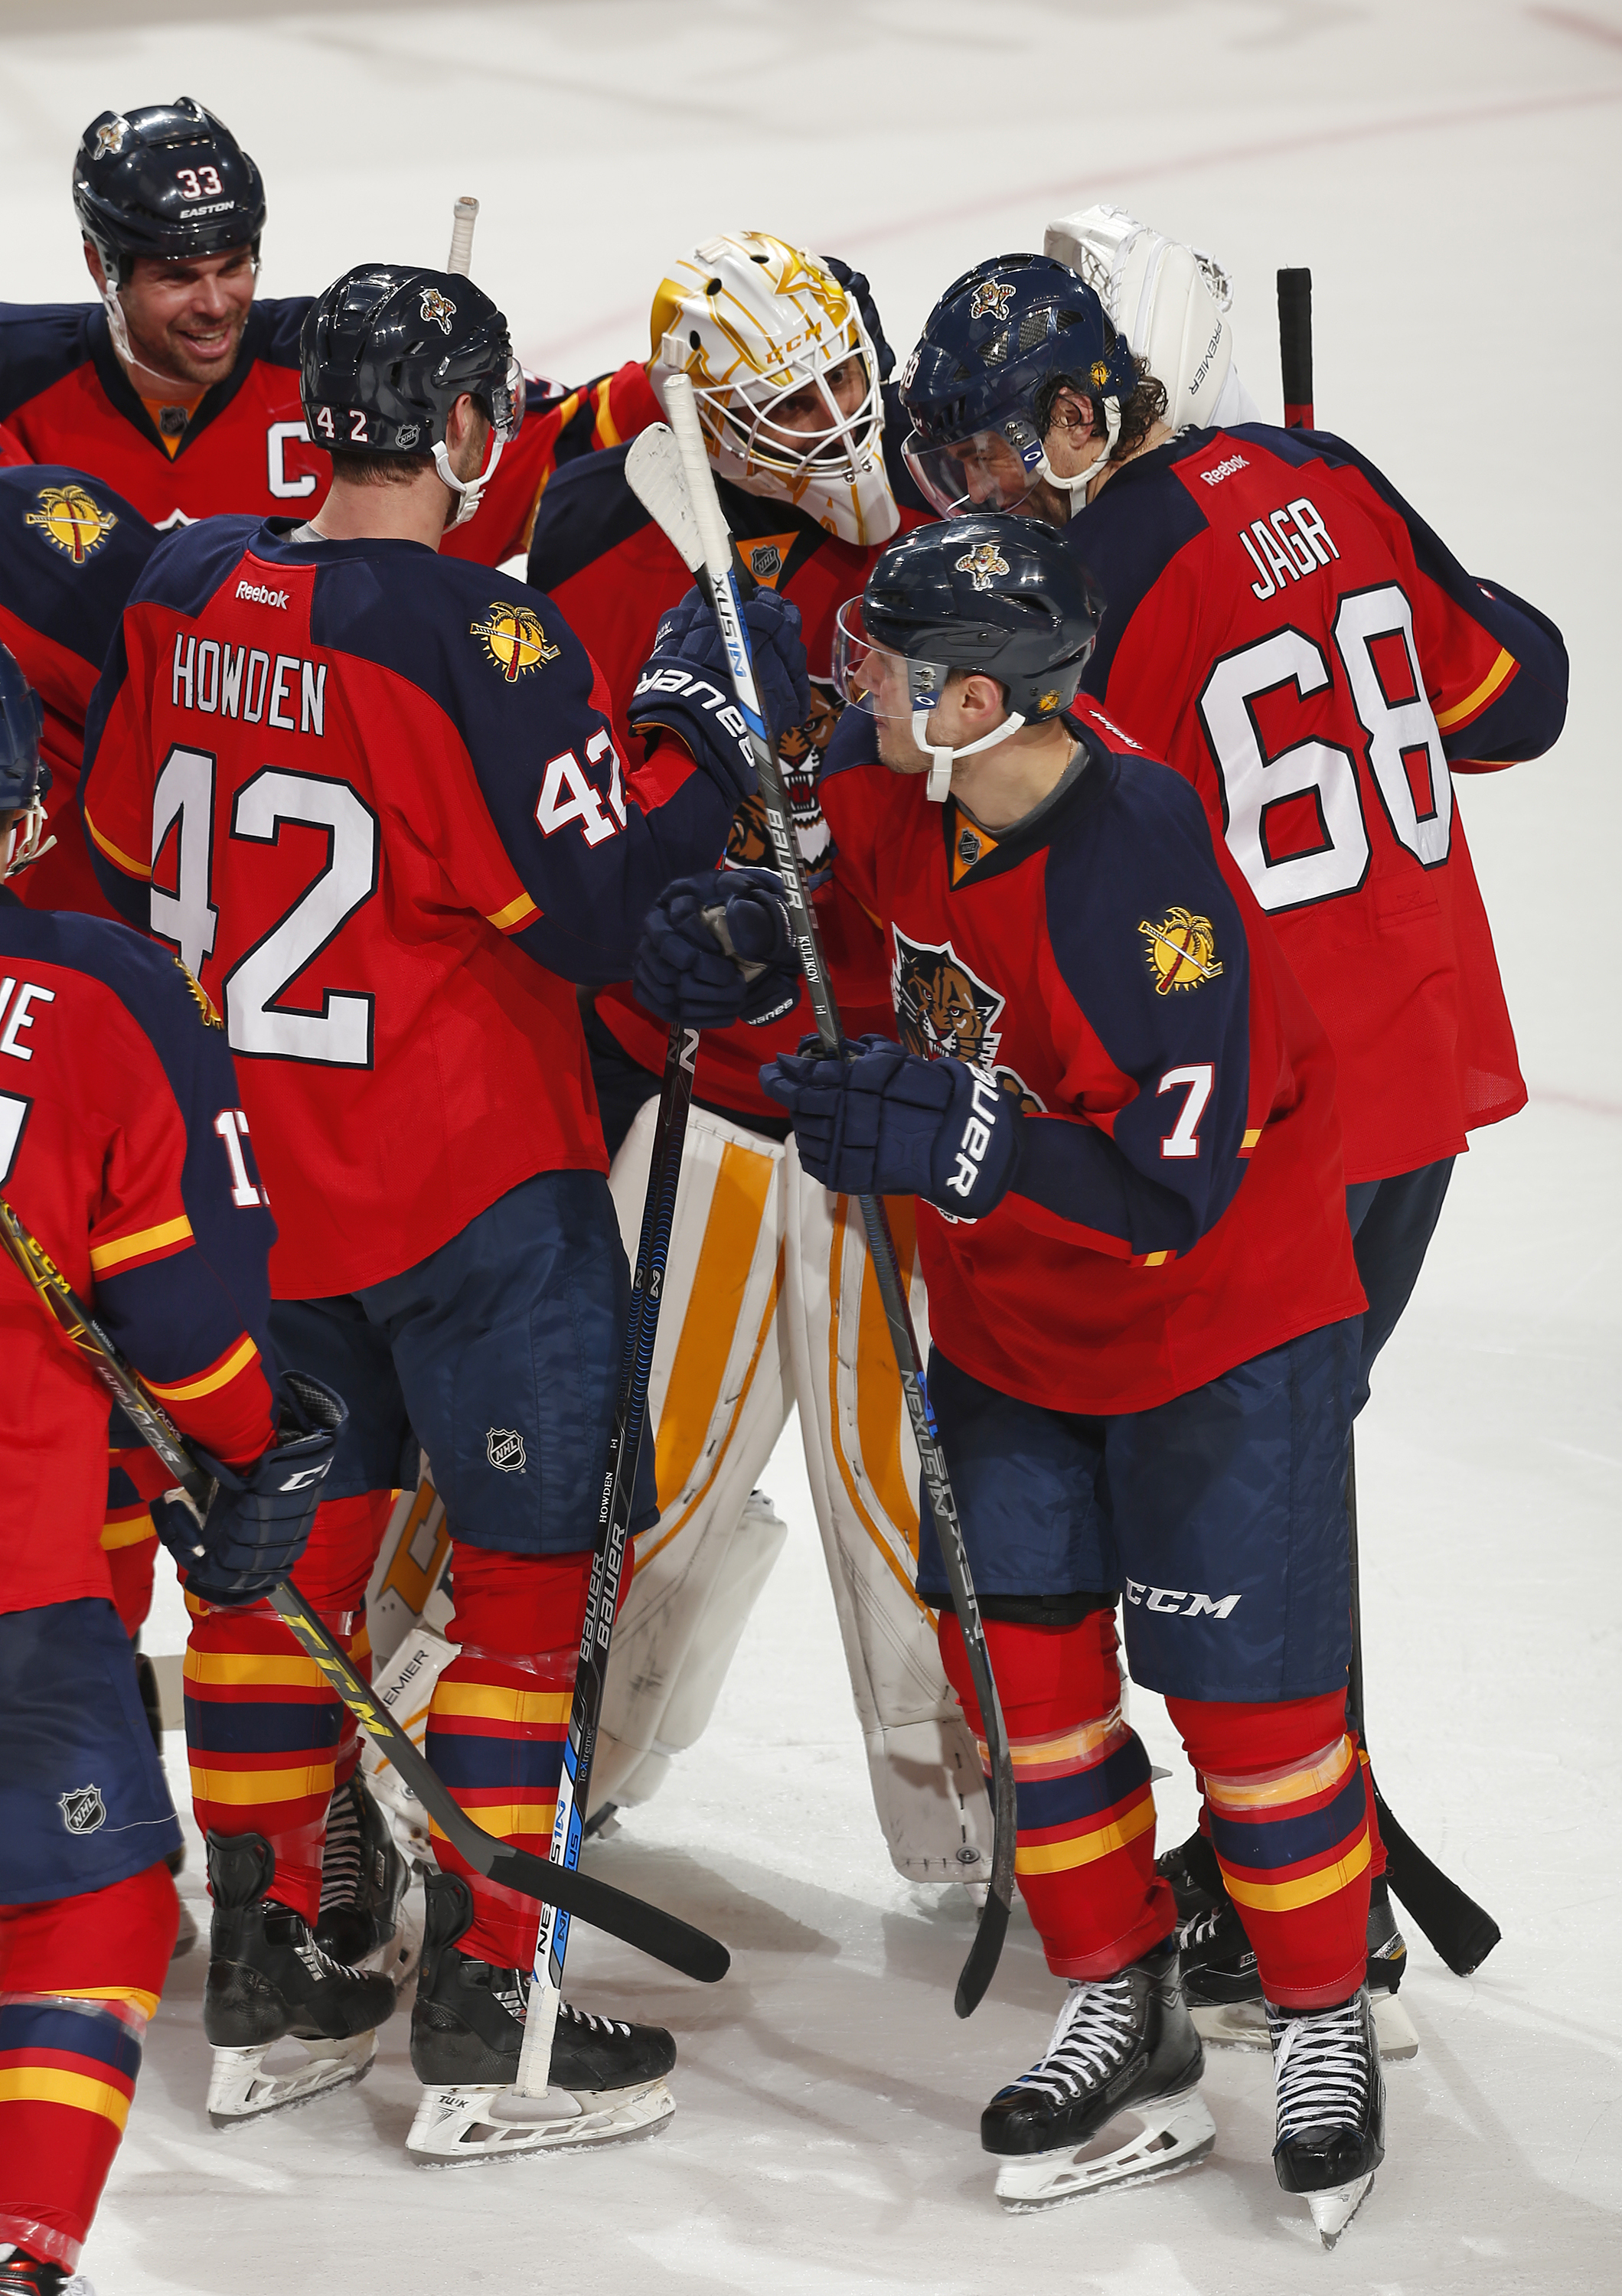 Florida Panthers goaltender Roberto Luongo (1) is congratulated by forward Jaromir Jagr (68), forward Quentin Howden (42), and defenseman Willie Mitchell (33) at the conclusion of the shoot-out of an NHL hockey game against the Ottawa Senators, Tuesday, D